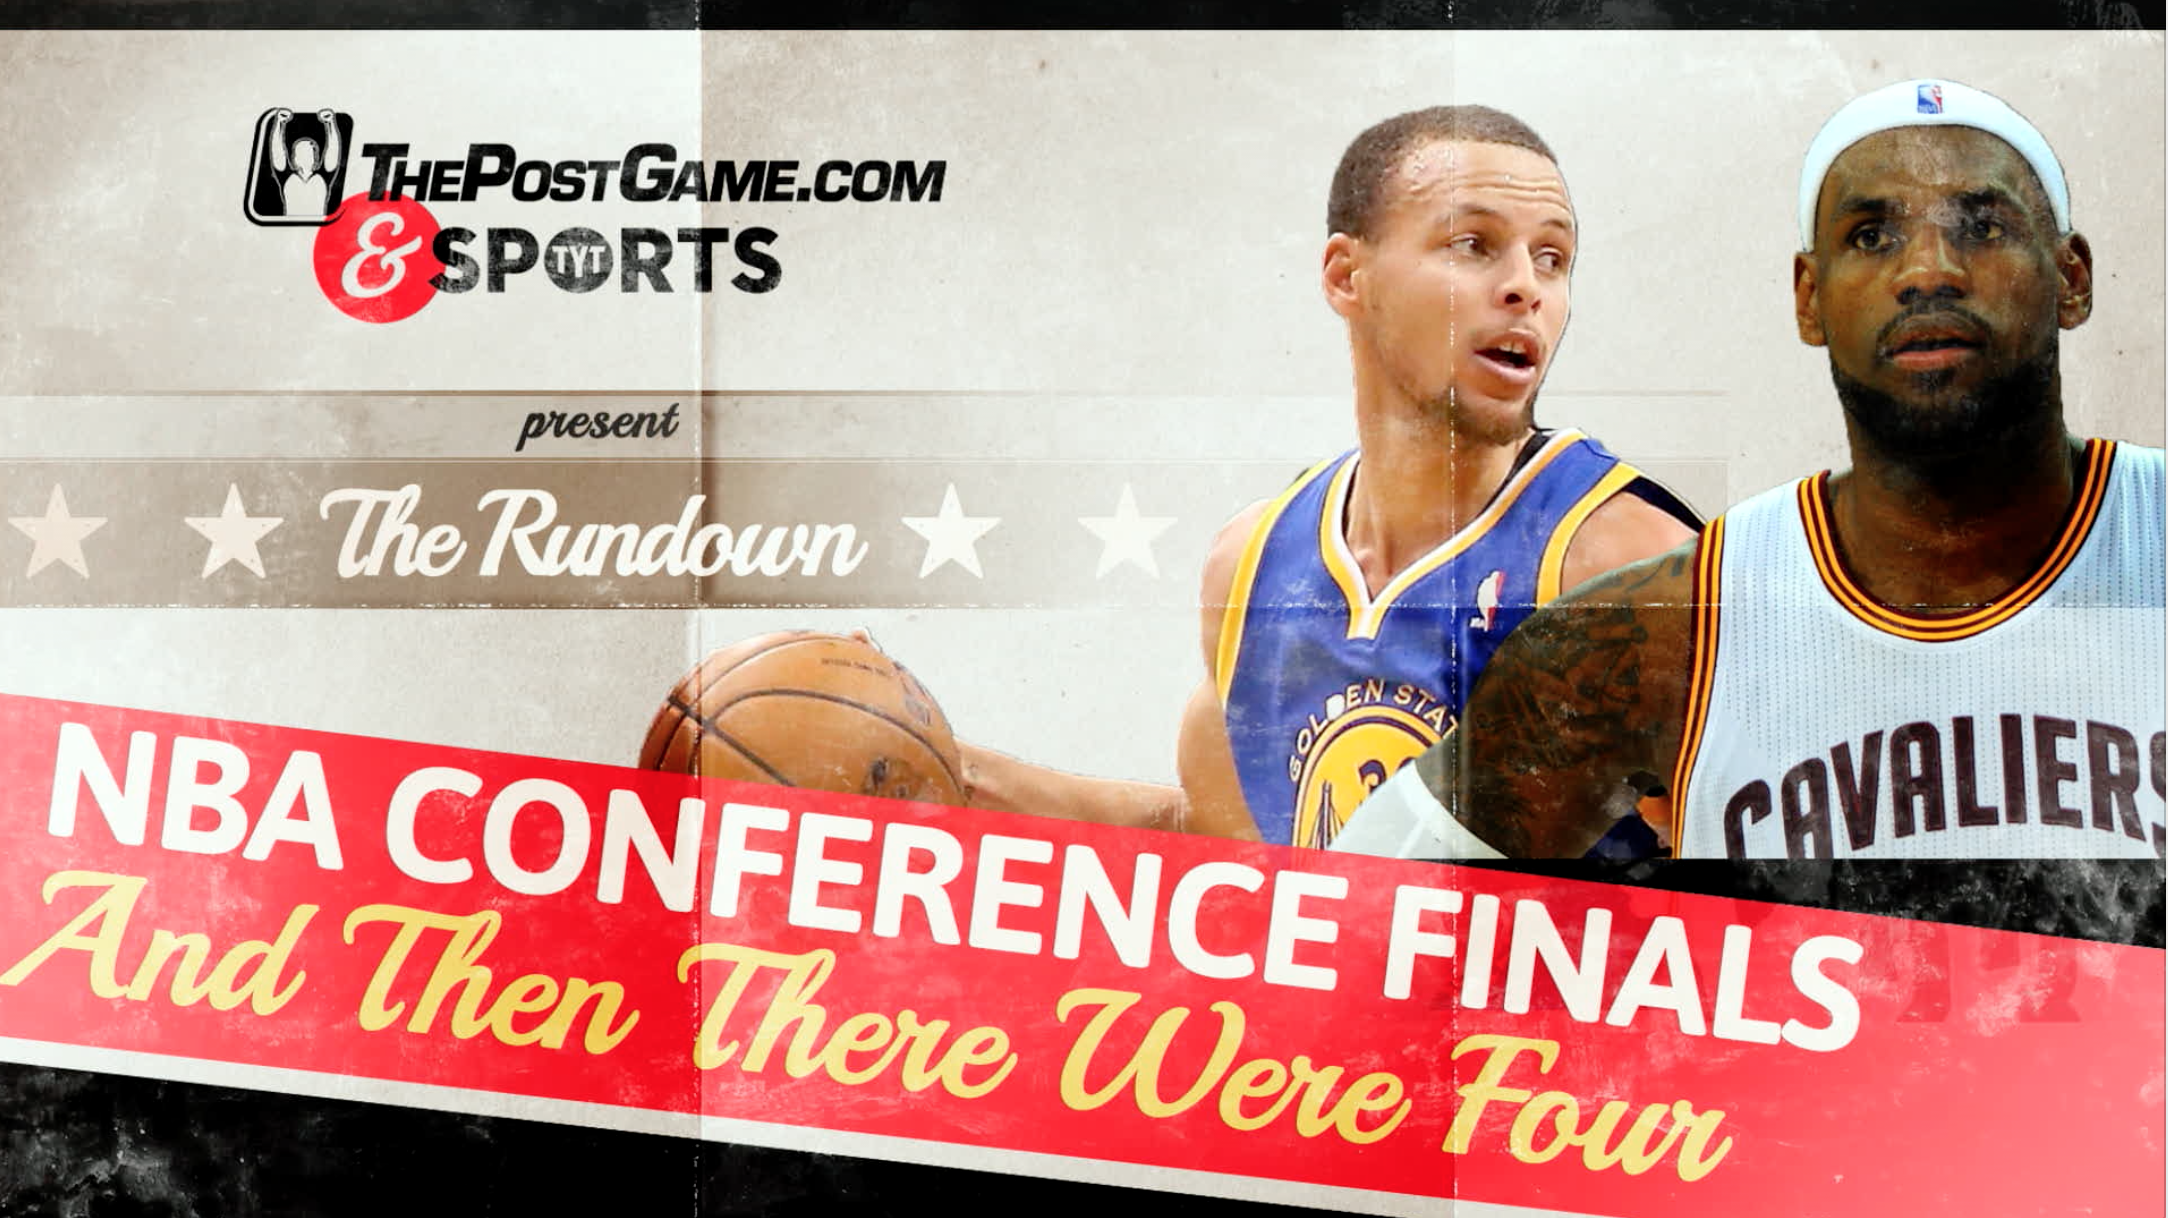 Watch Former Nba Star Muggsy Bogues Give Young Stephen Curry